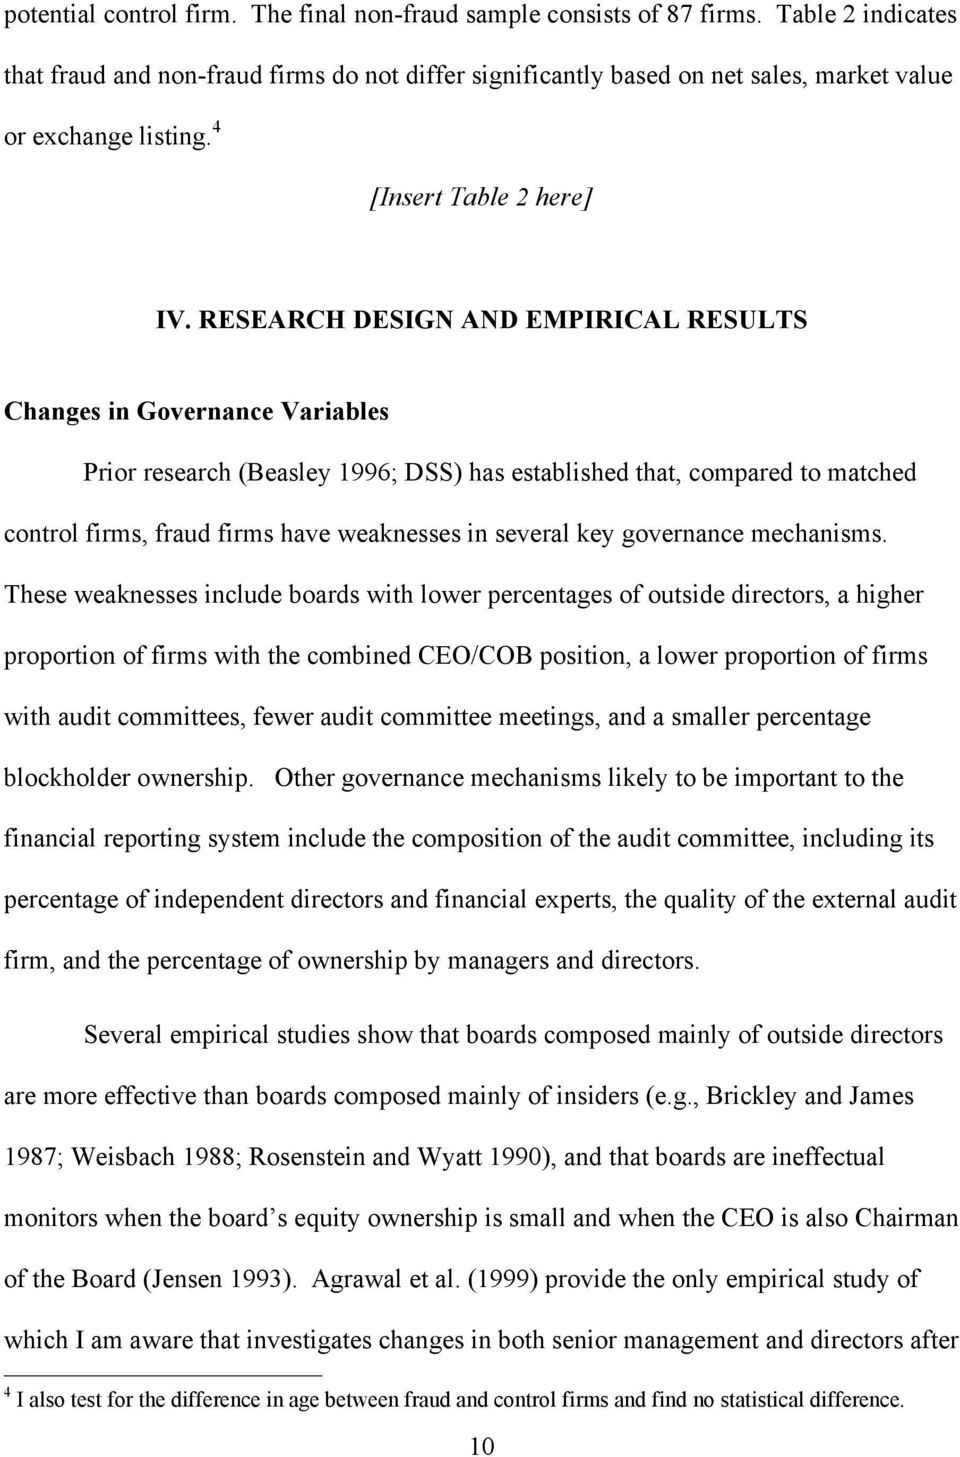 RESEARCH DESIGN AND EMPIRICAL RESULTS Changes in Governance Variables Prior research (Beasley 1996; DSS) has established that, compared to matched control firms, fraud firms have weaknesses in